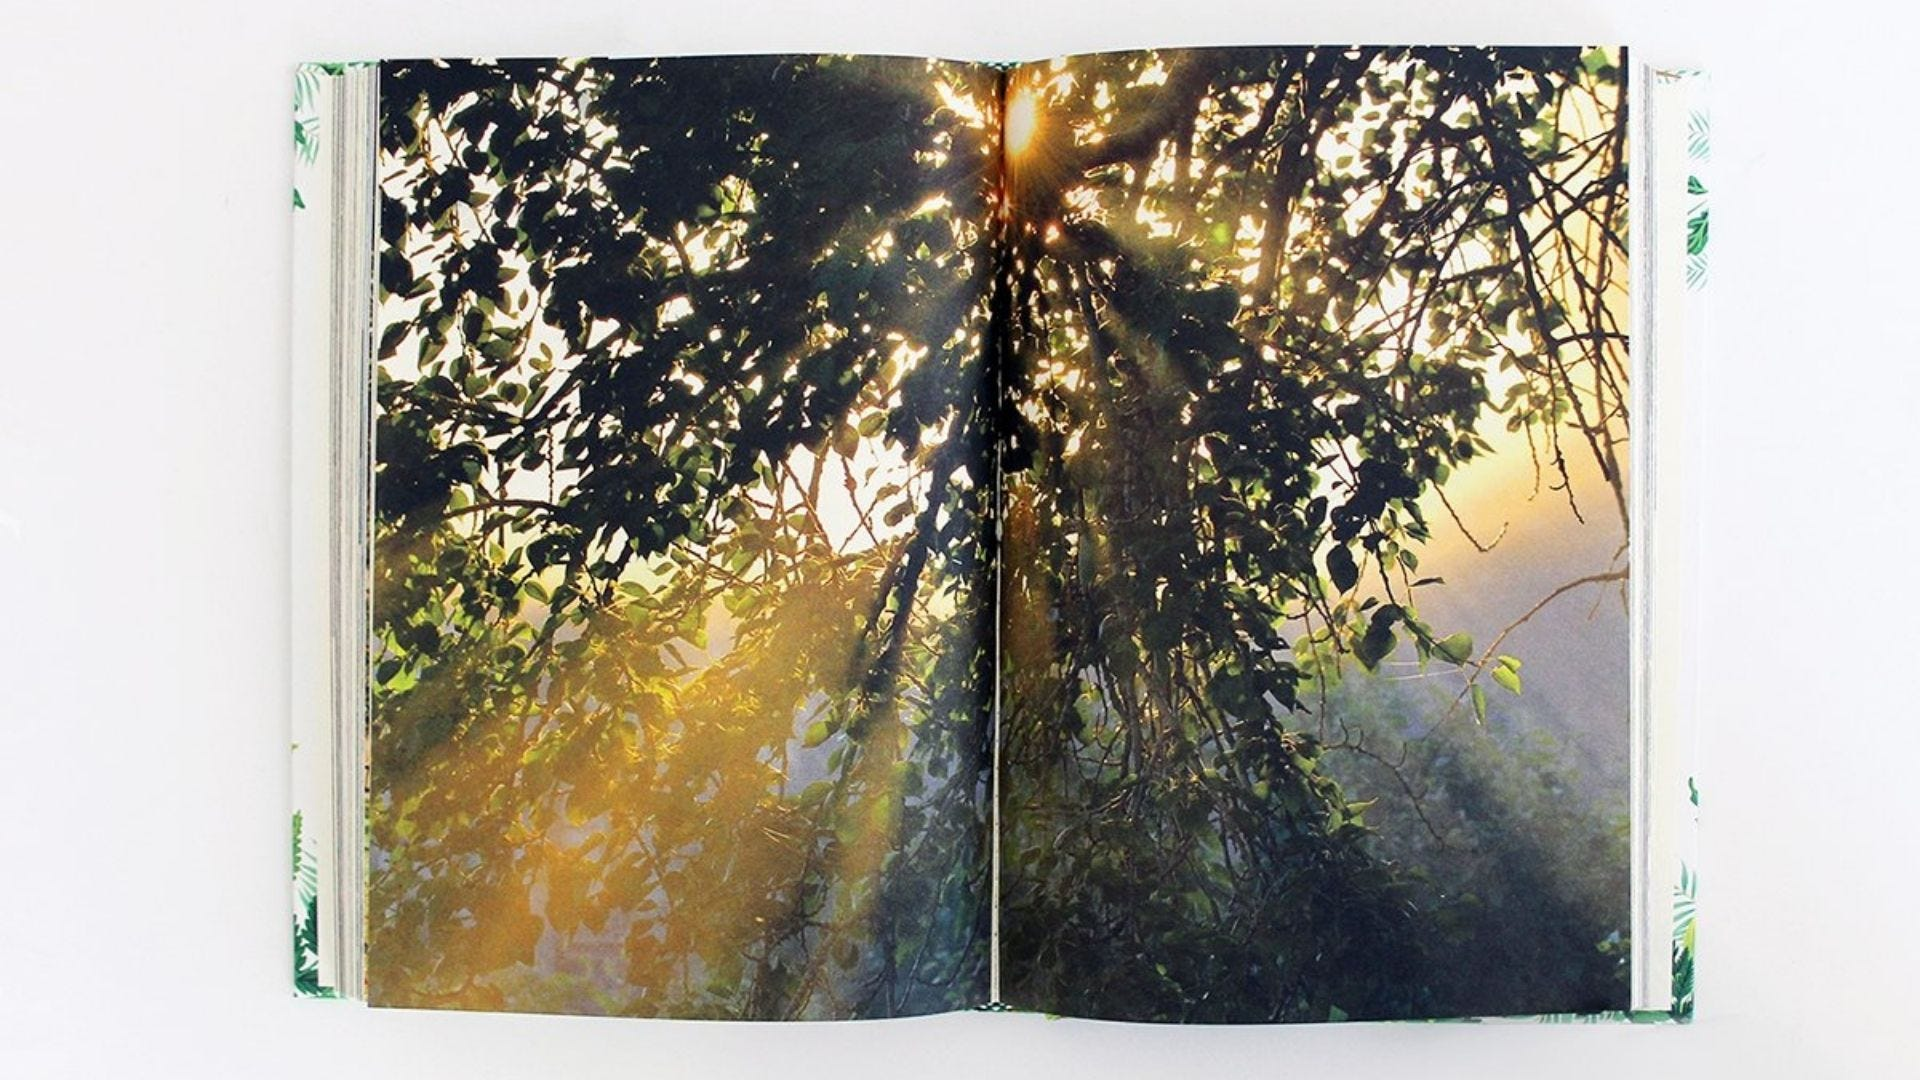 A photograph in a book of light coming through the trees